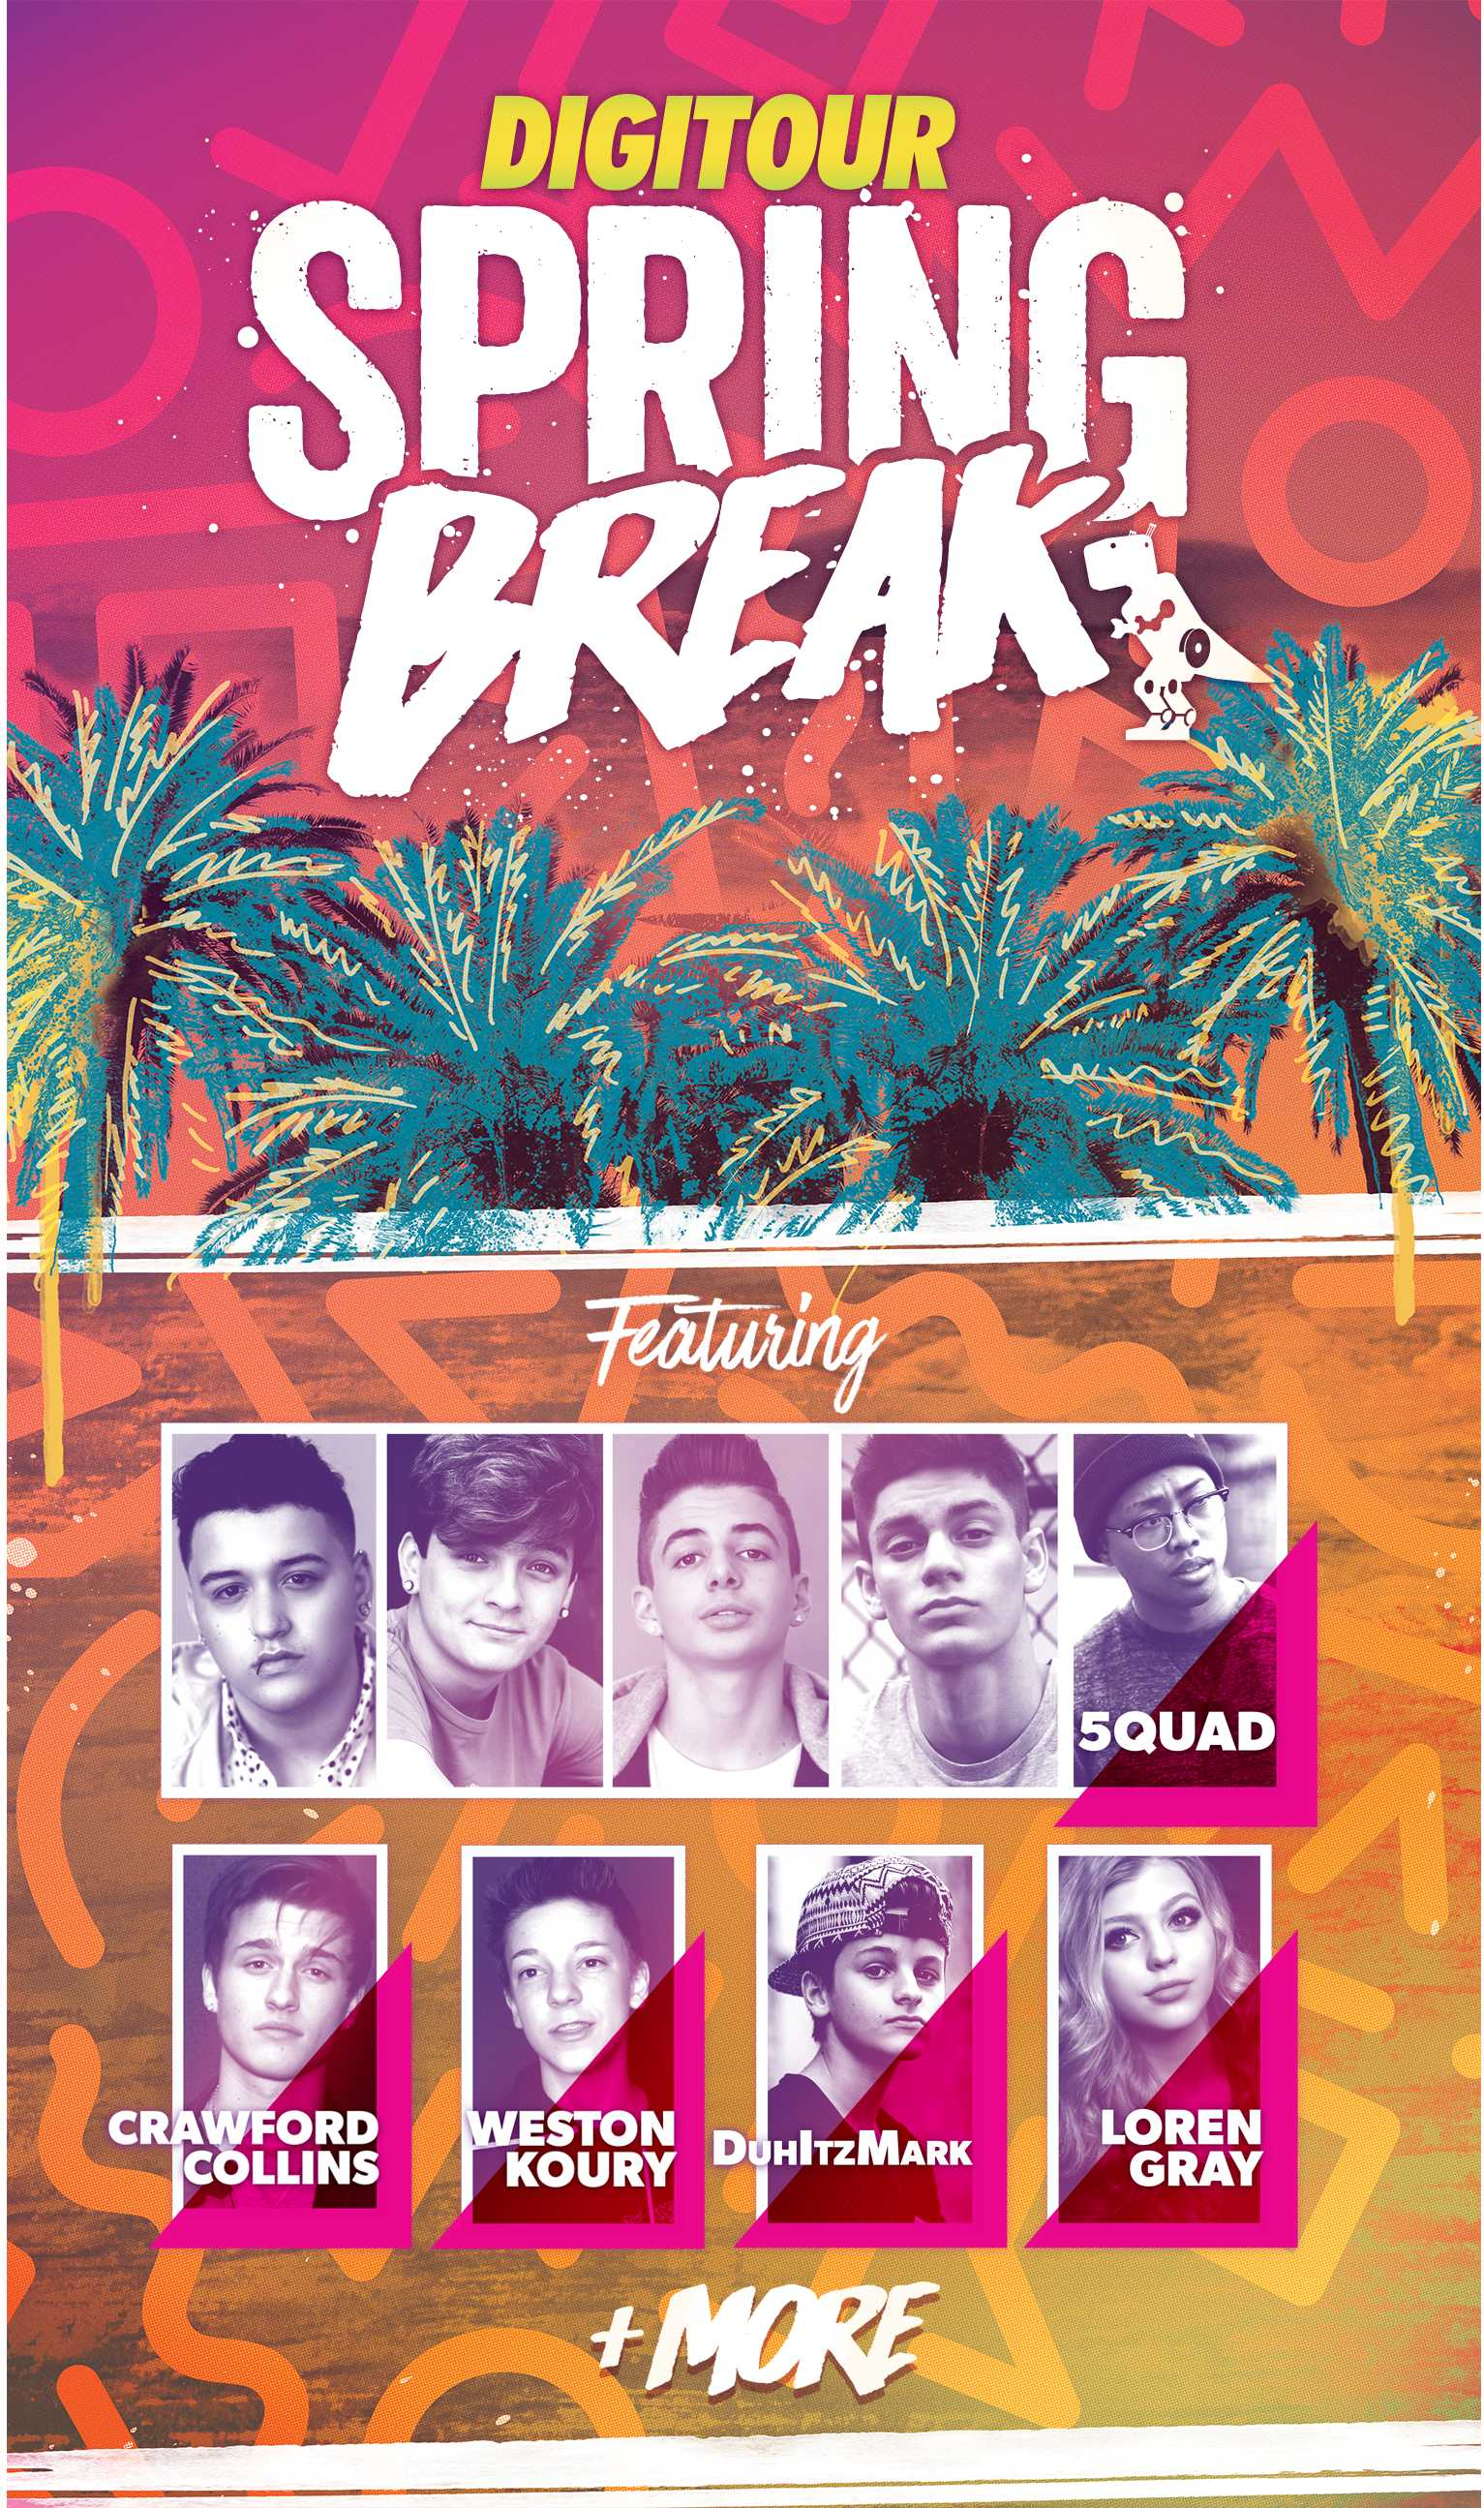 DigiTour Media, 5Quad, DuhItzMark, And More Are Bringing Spring Break To YOU | DigiTour